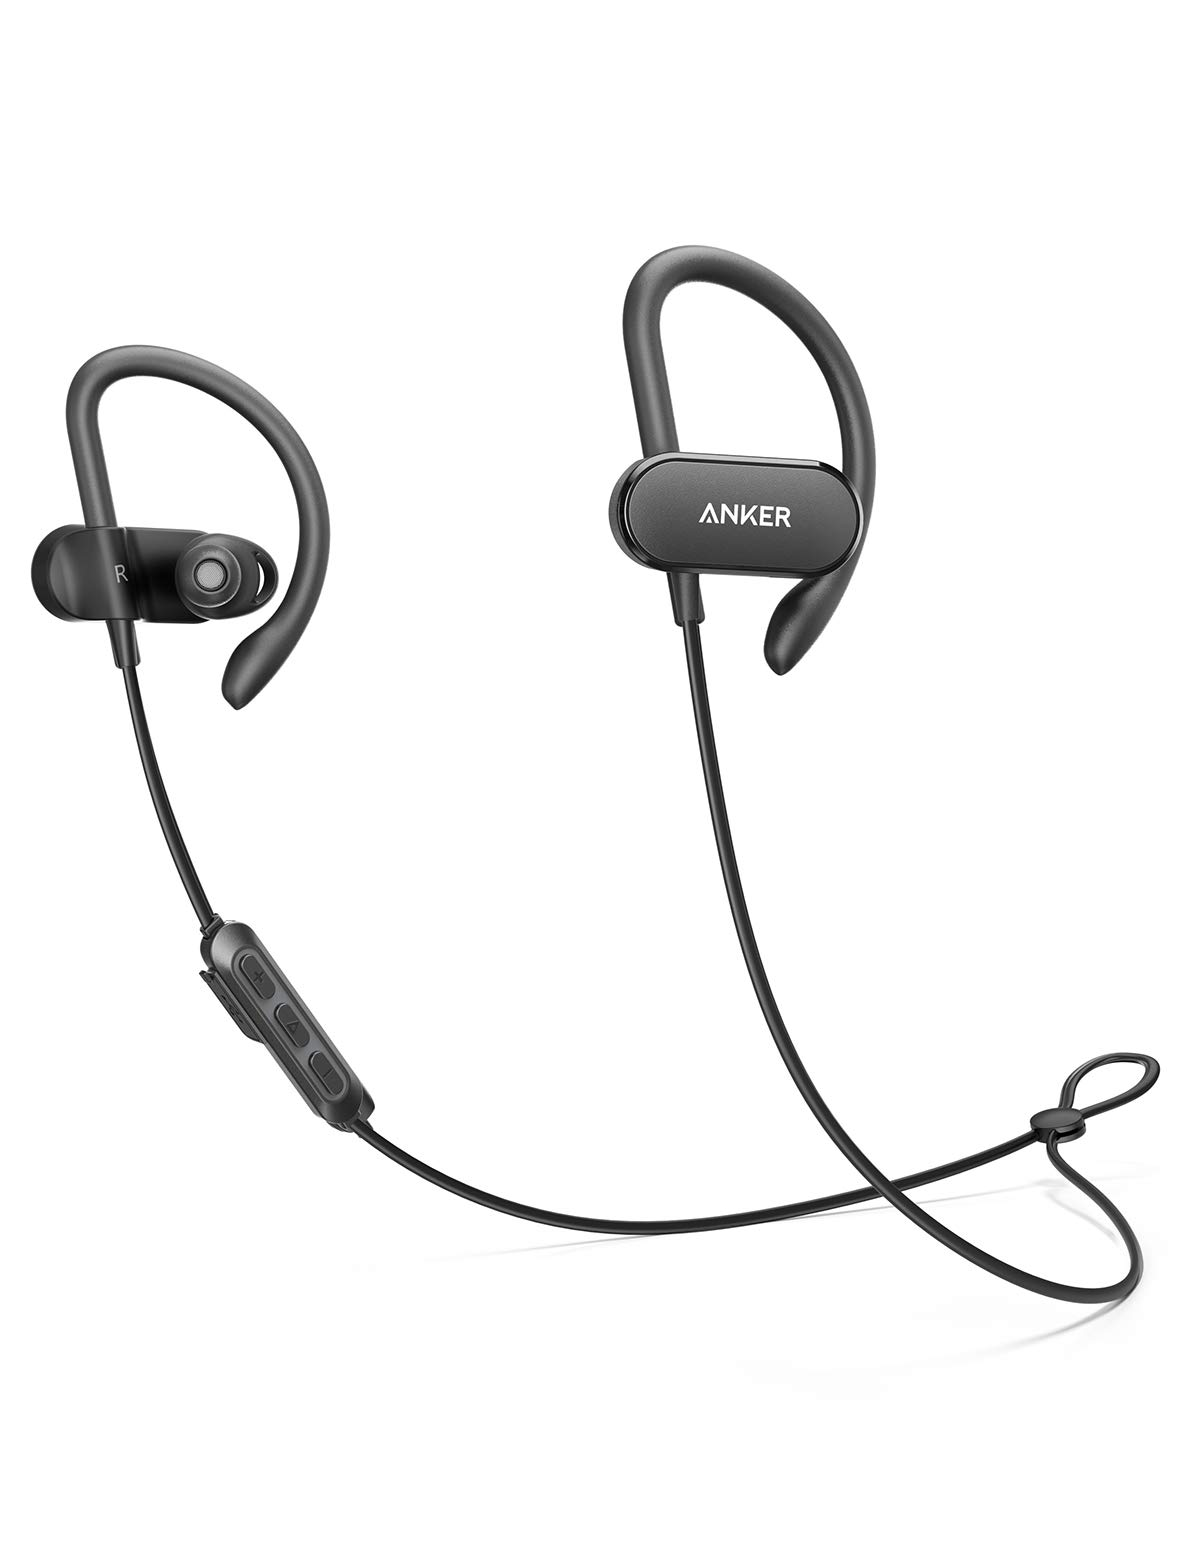 [Upgraded] Anker SoundBuds Curve Wireless Headphones, 18H Battery, IPX7 Waterproof Bluetooth Headphones, Bluetooth 5.0…